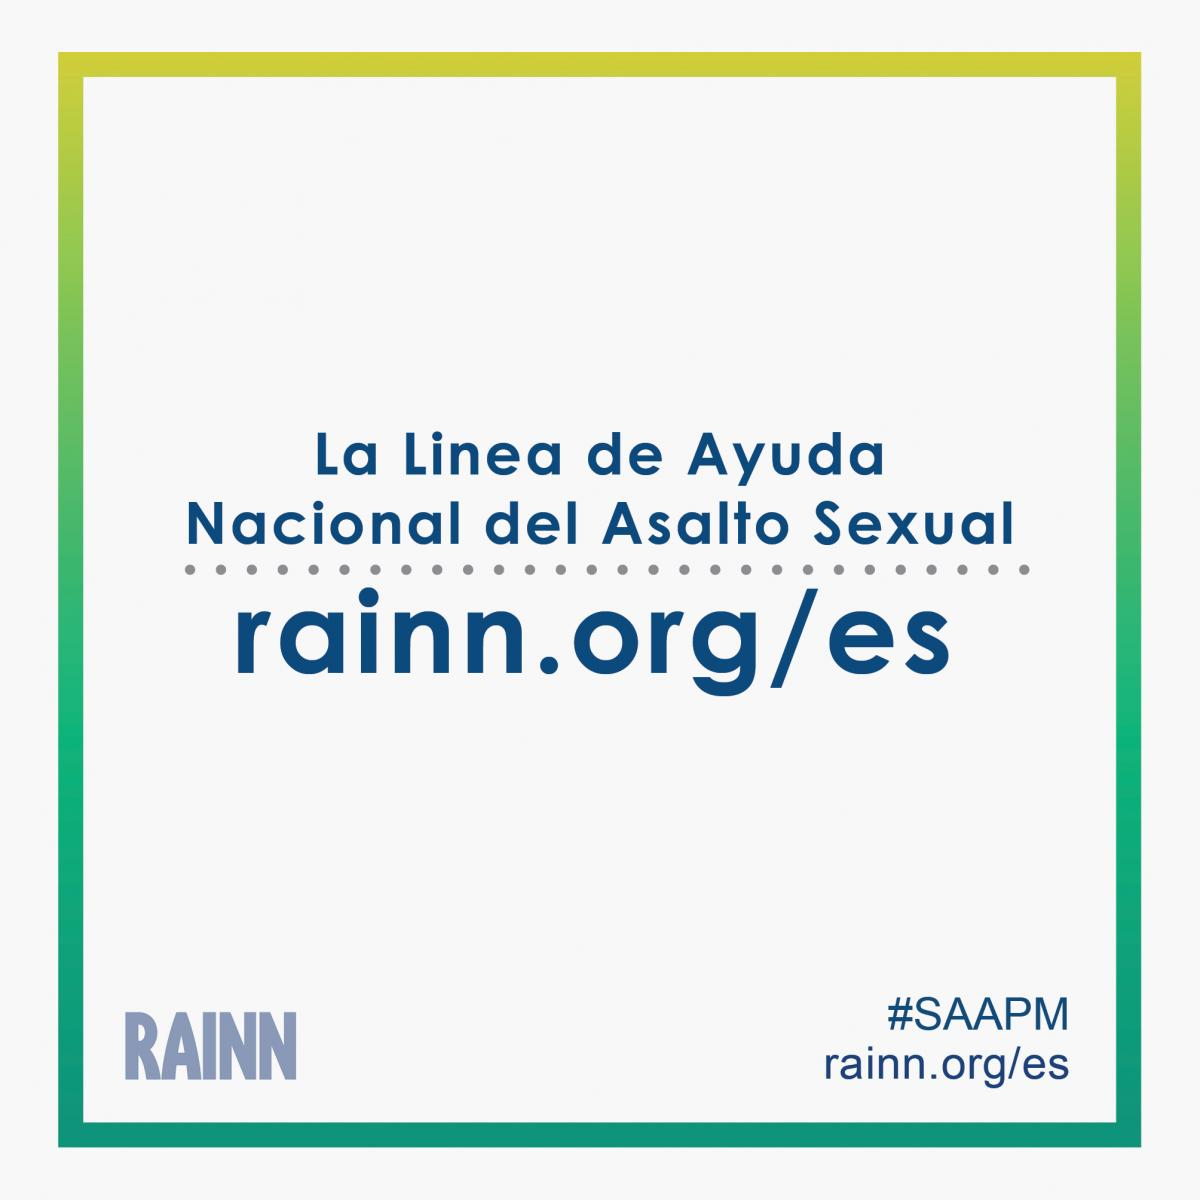 Instagram ready graphic stating: La linea de ayuda nacional del asalto sexual, rainn.org/es